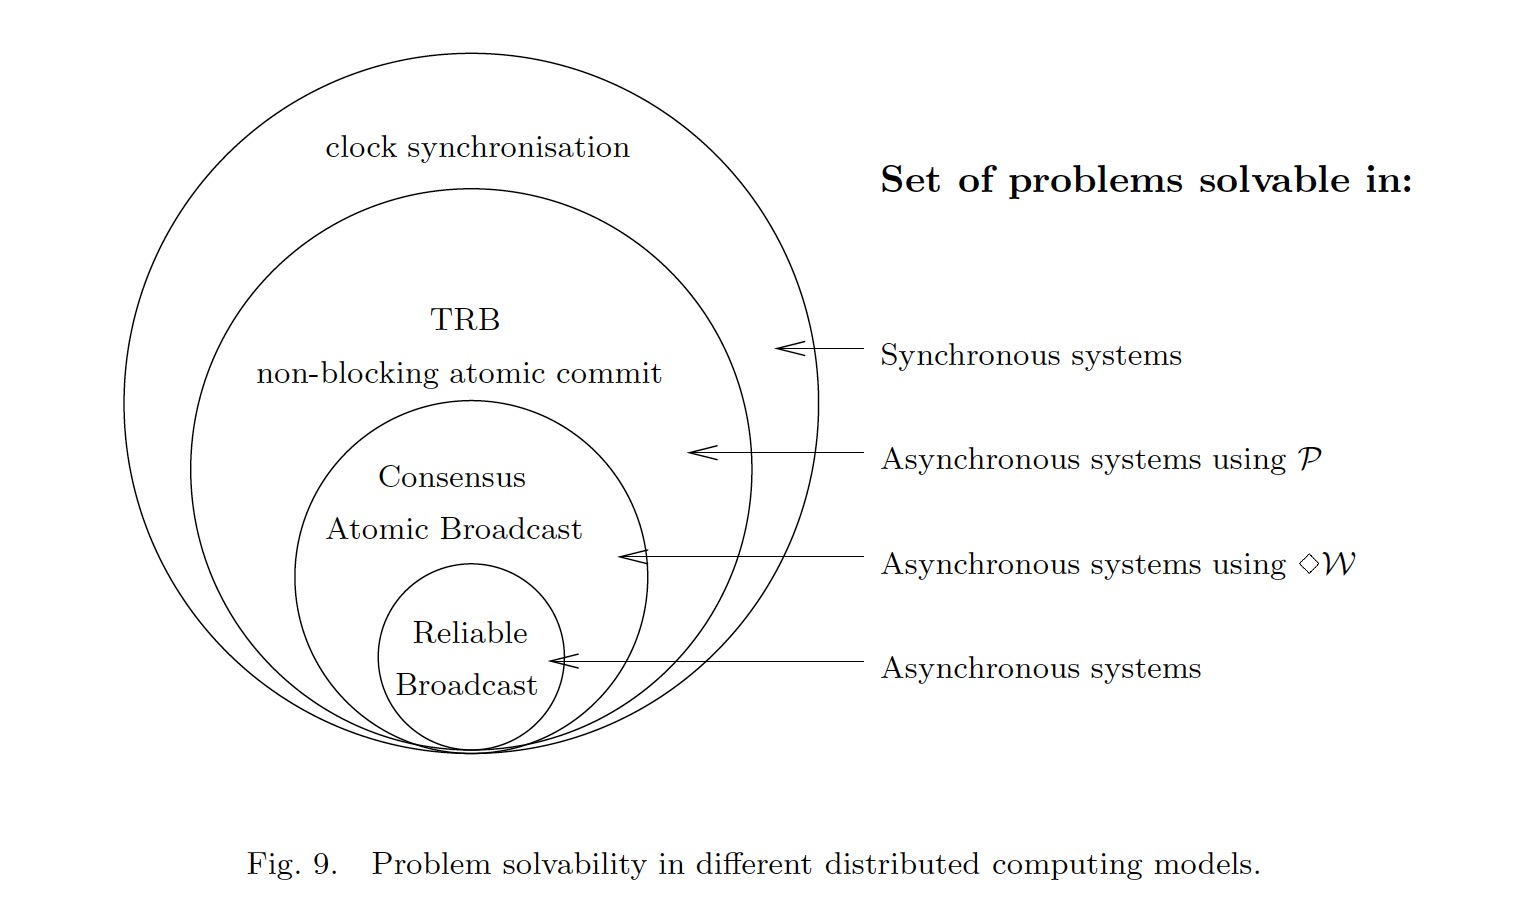 Problem solvability in different distributed computing models